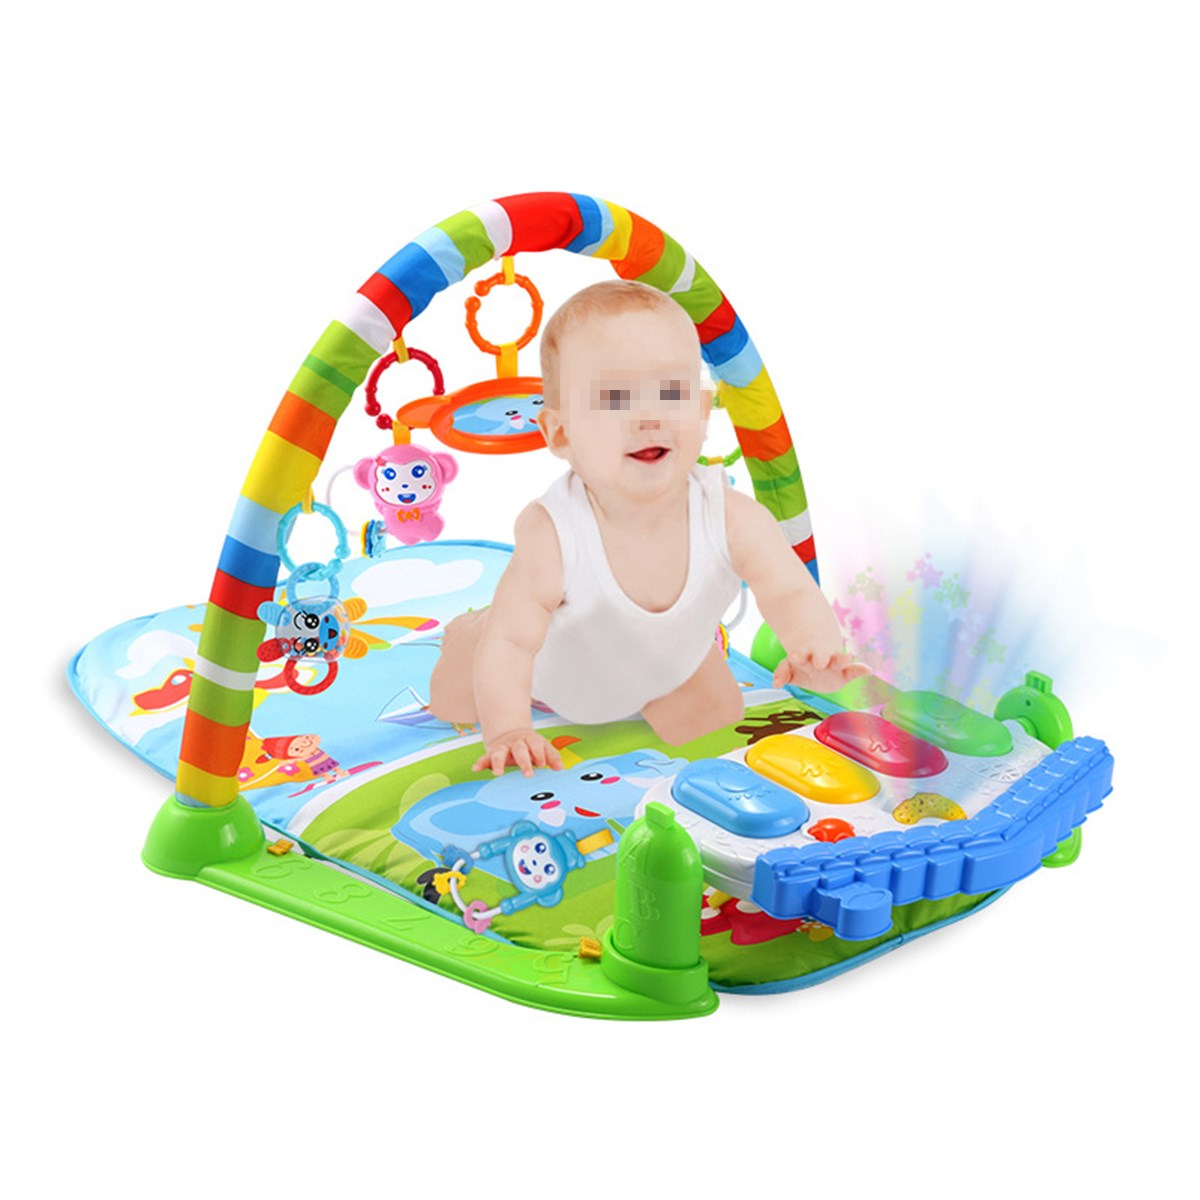 3 In 1 Newborn Infant Baby Game Bed Baby Toddler Cribs Crawling Activity Gym Mat Floor Blanket Kids Toys Carpet Bedding Soft fitness rack baby music electric game blanket newborn baby game blanket toys with remote control